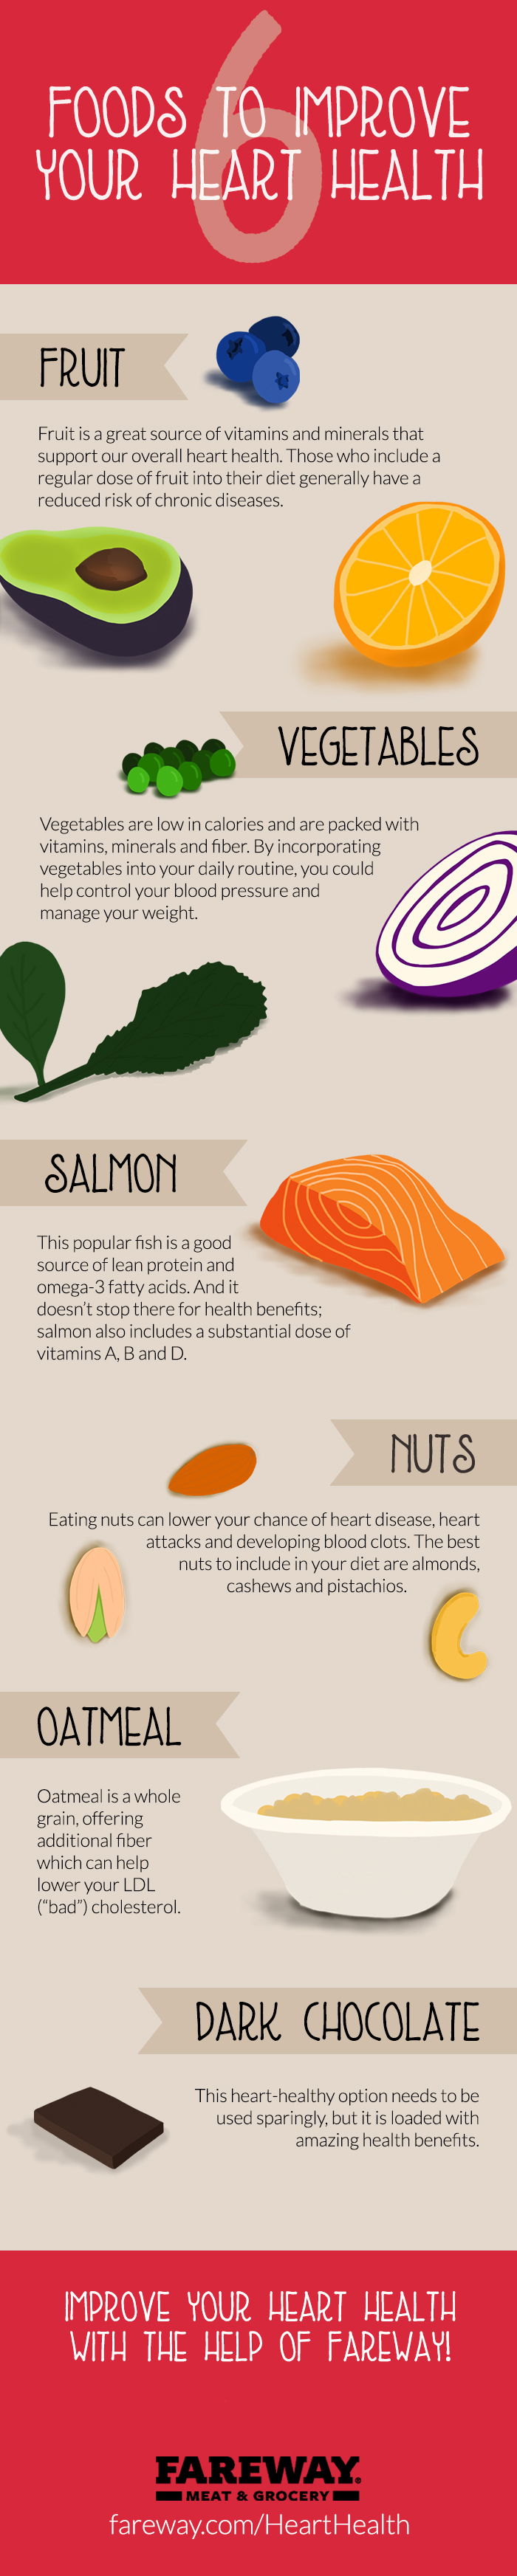 Image of the 6 Foods to Improve Heart Health pamphlet.